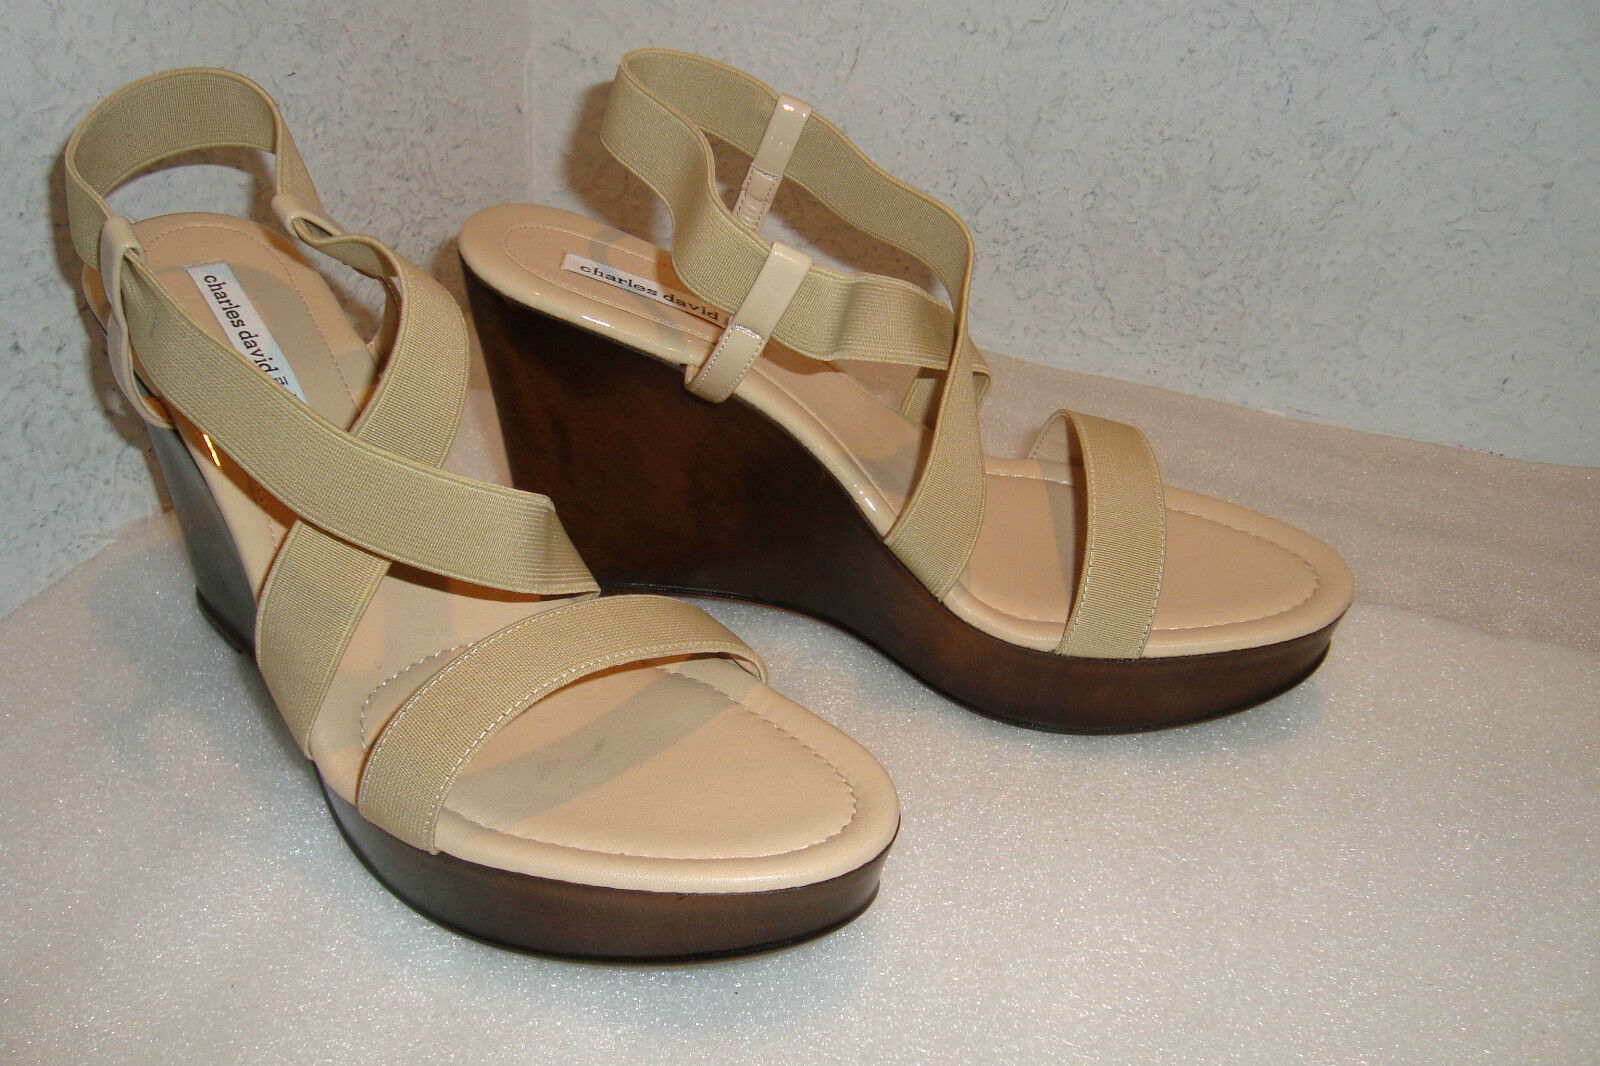 Charles David Womens NWOB Camel Stretch Wedge Sandals shoes 10 MED NEW